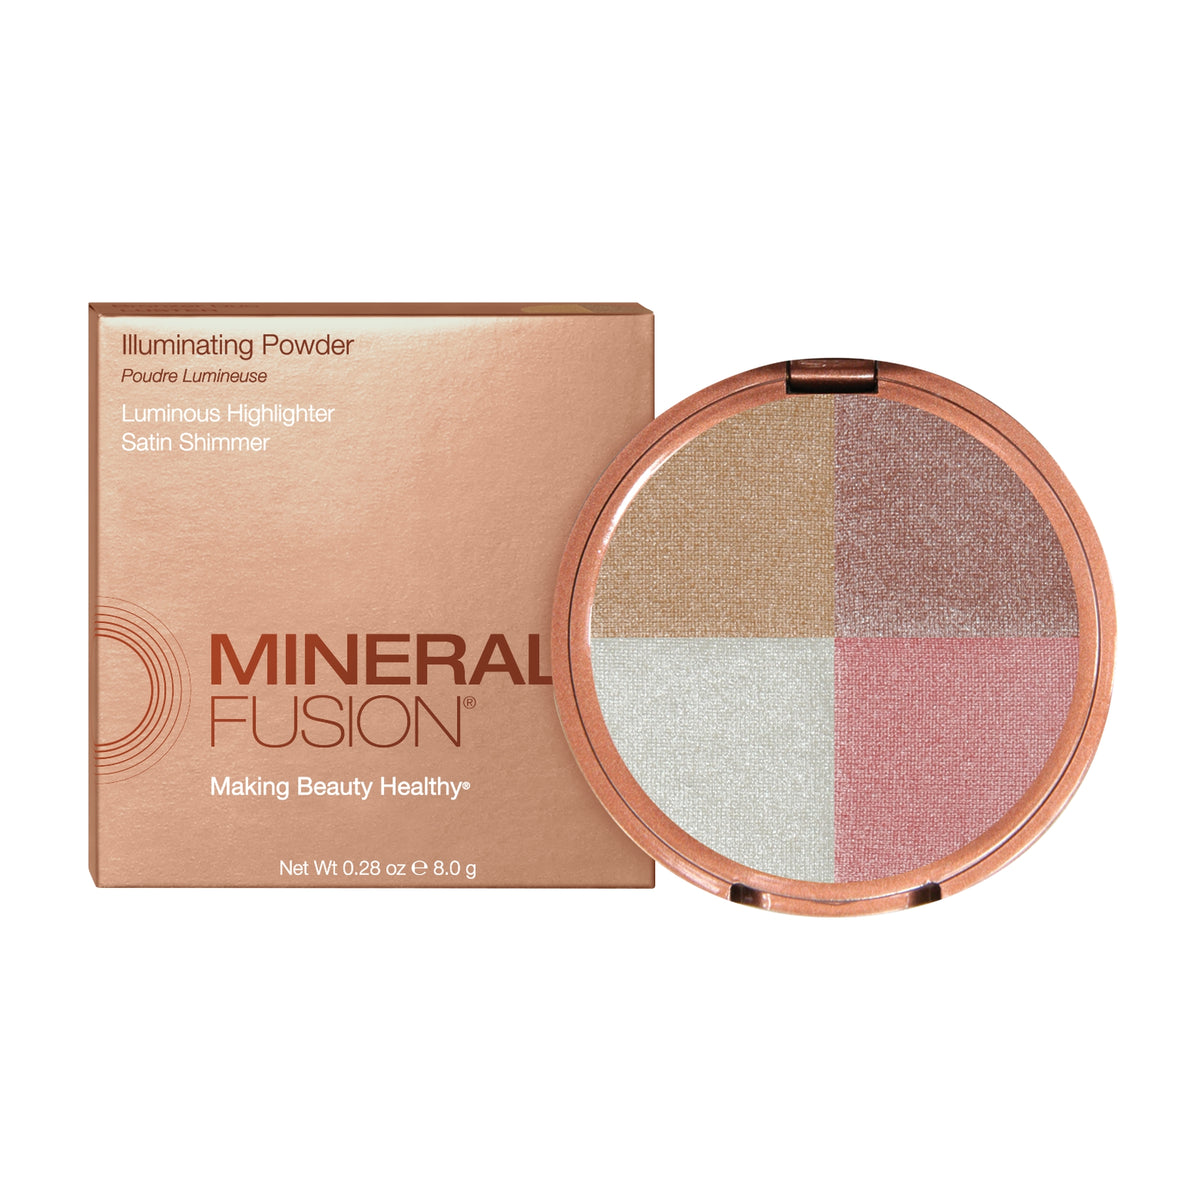 Radiance Illuminating Powder / .29 oz